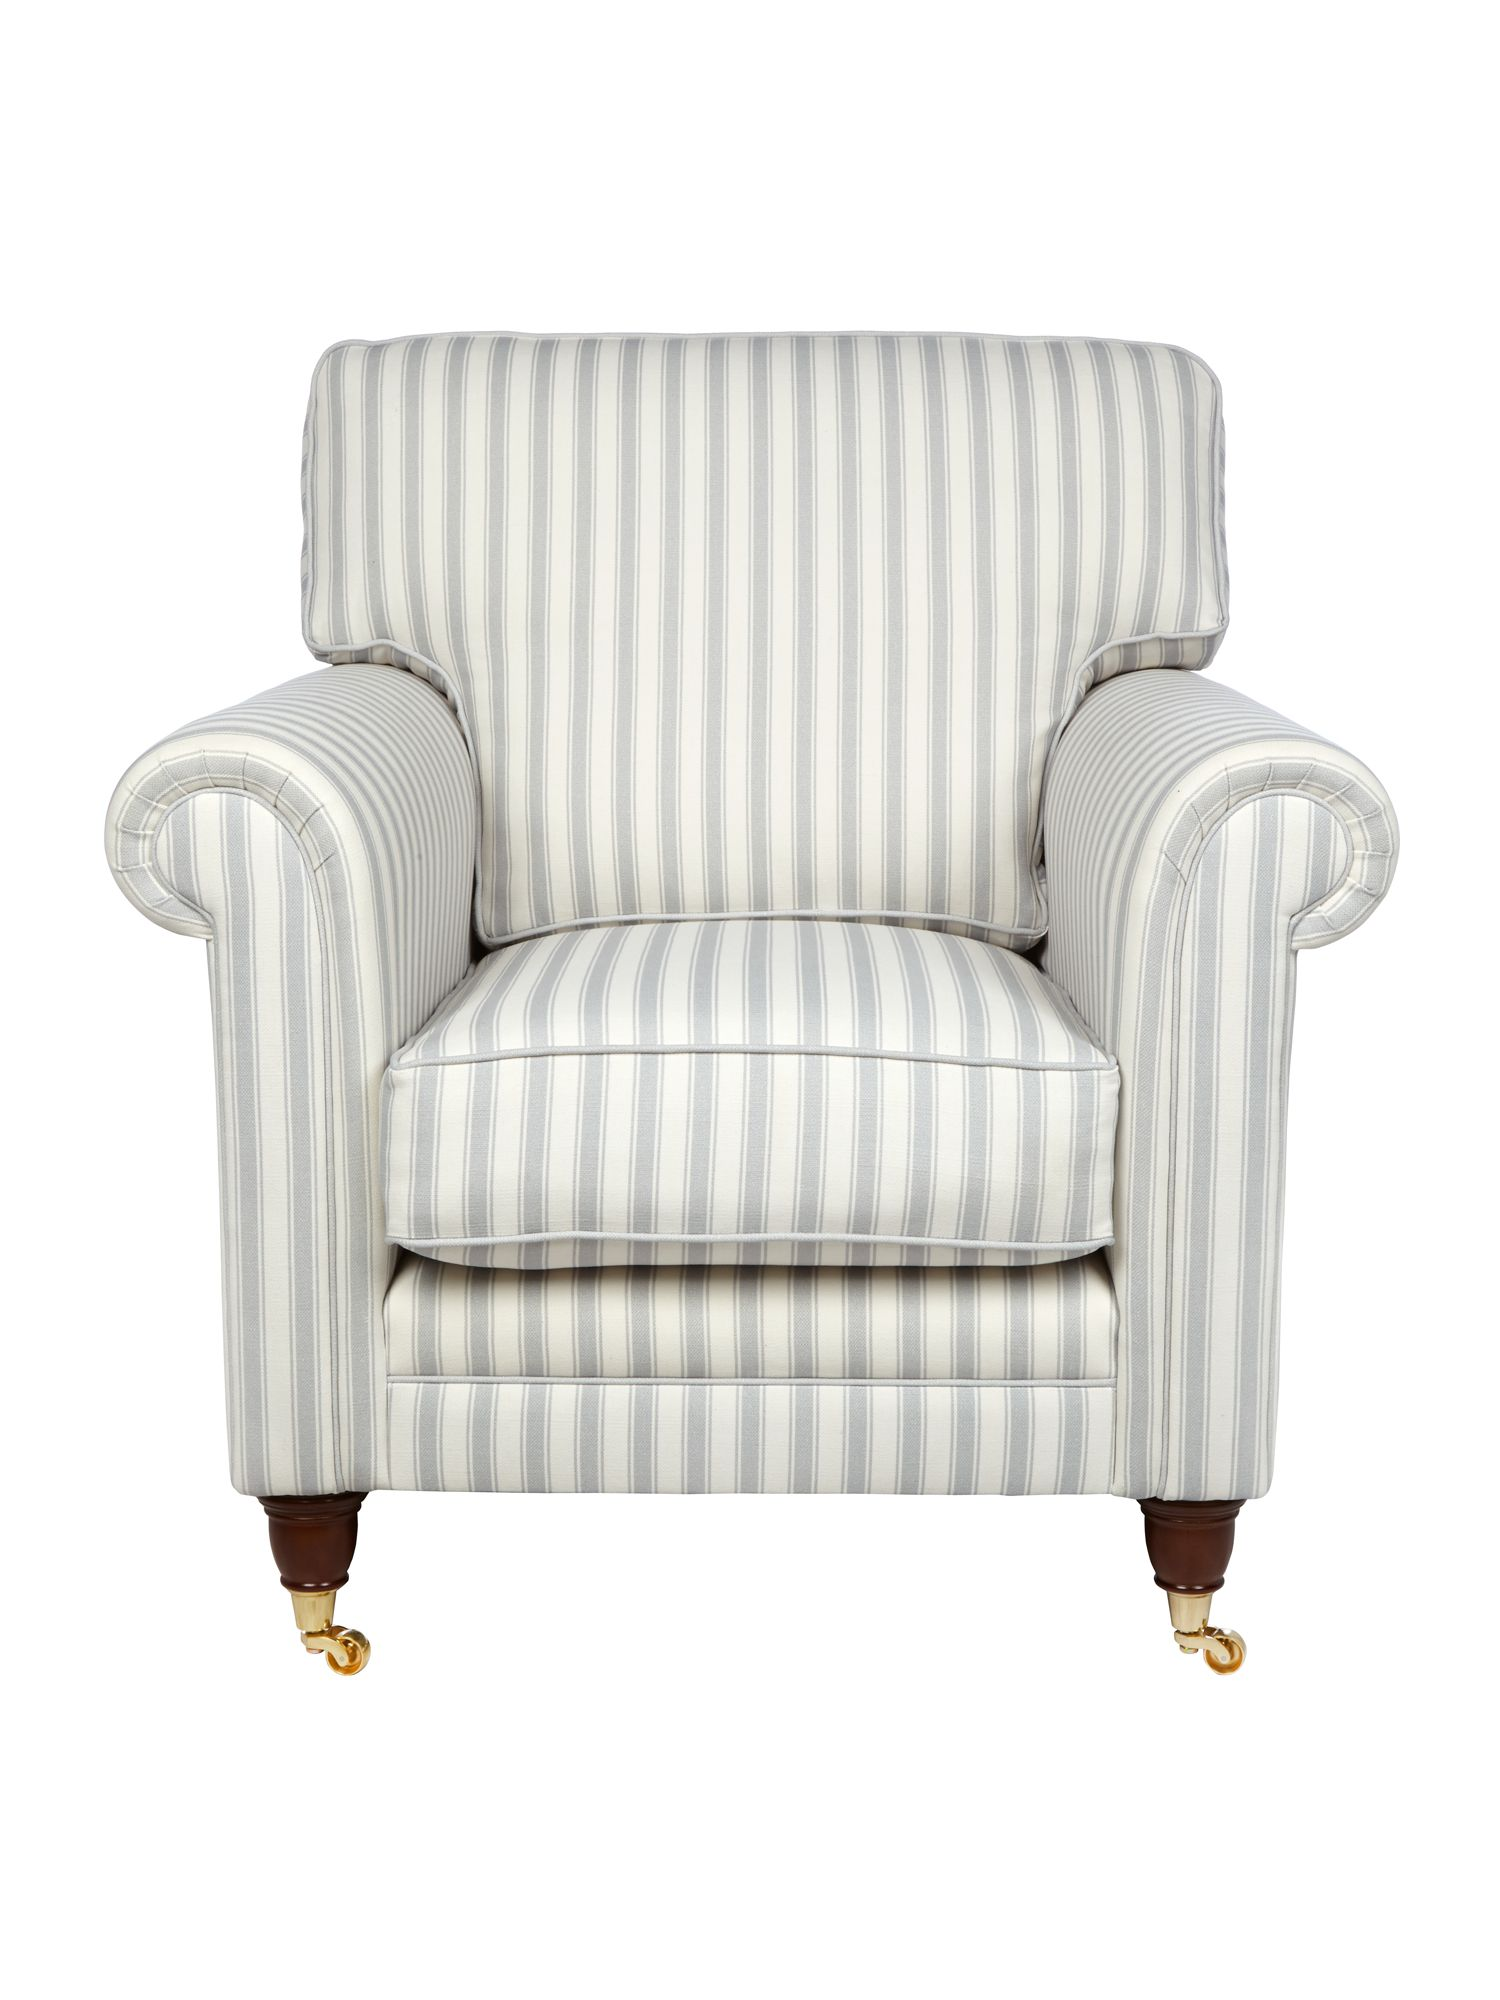 Wiltshire grey stripe armchair